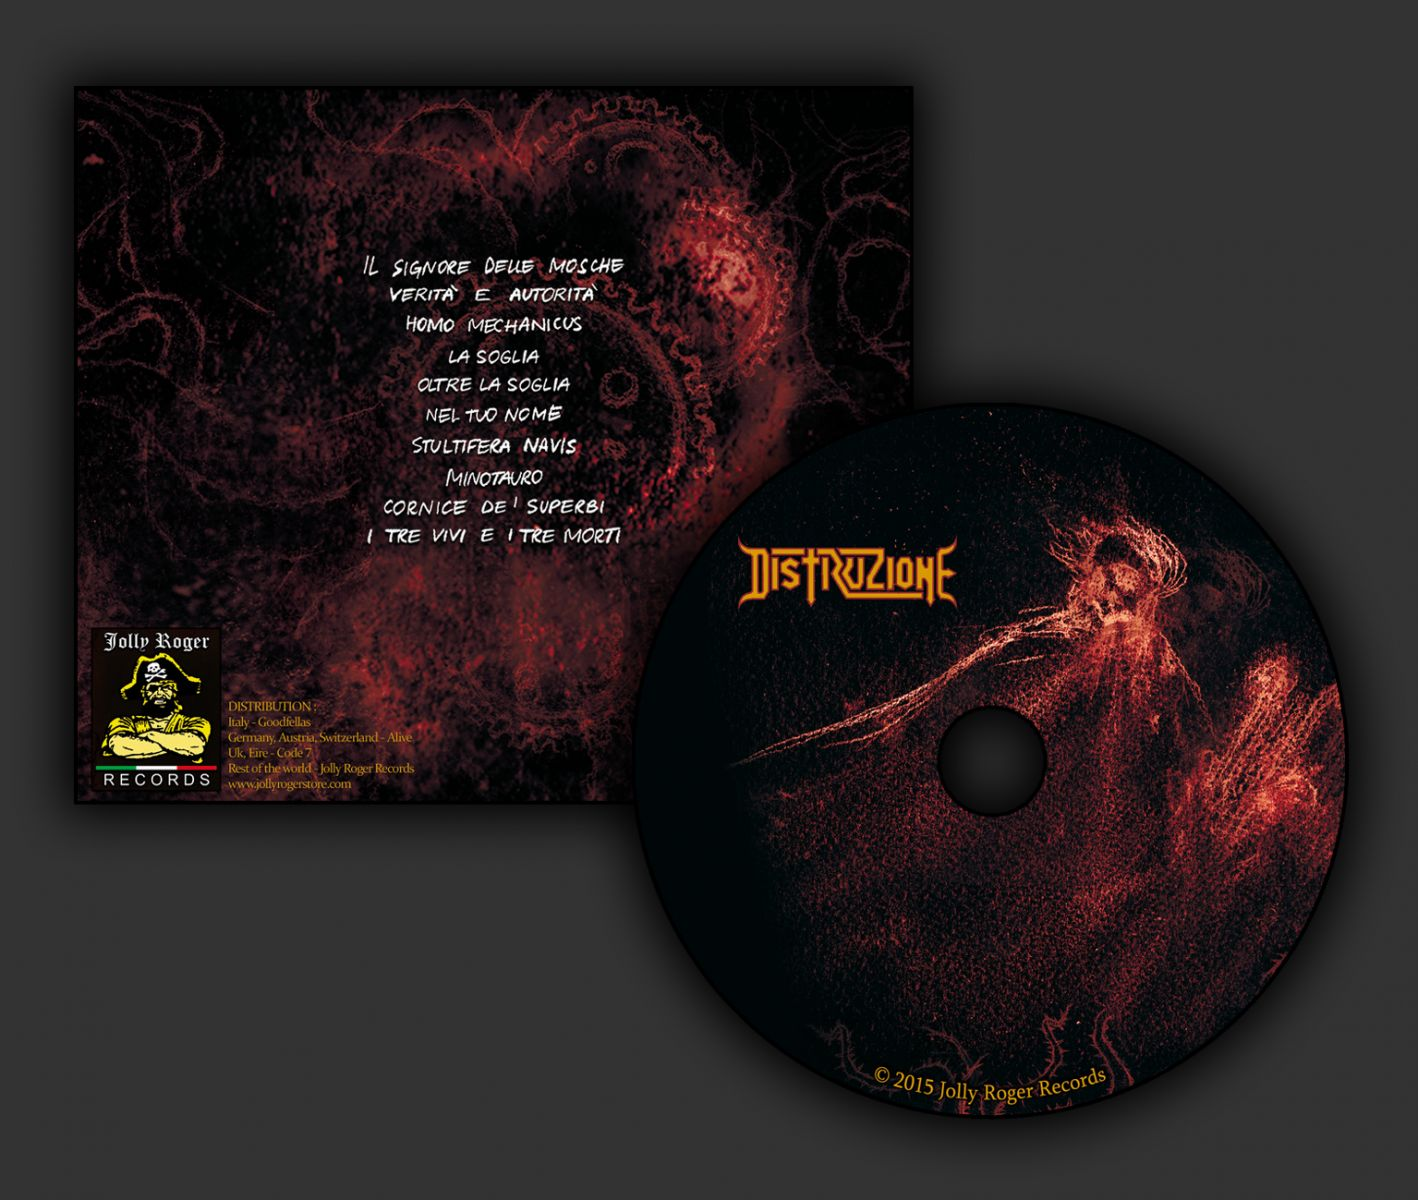 distruzione, olocausto cerebrale, endogena, thrash metal